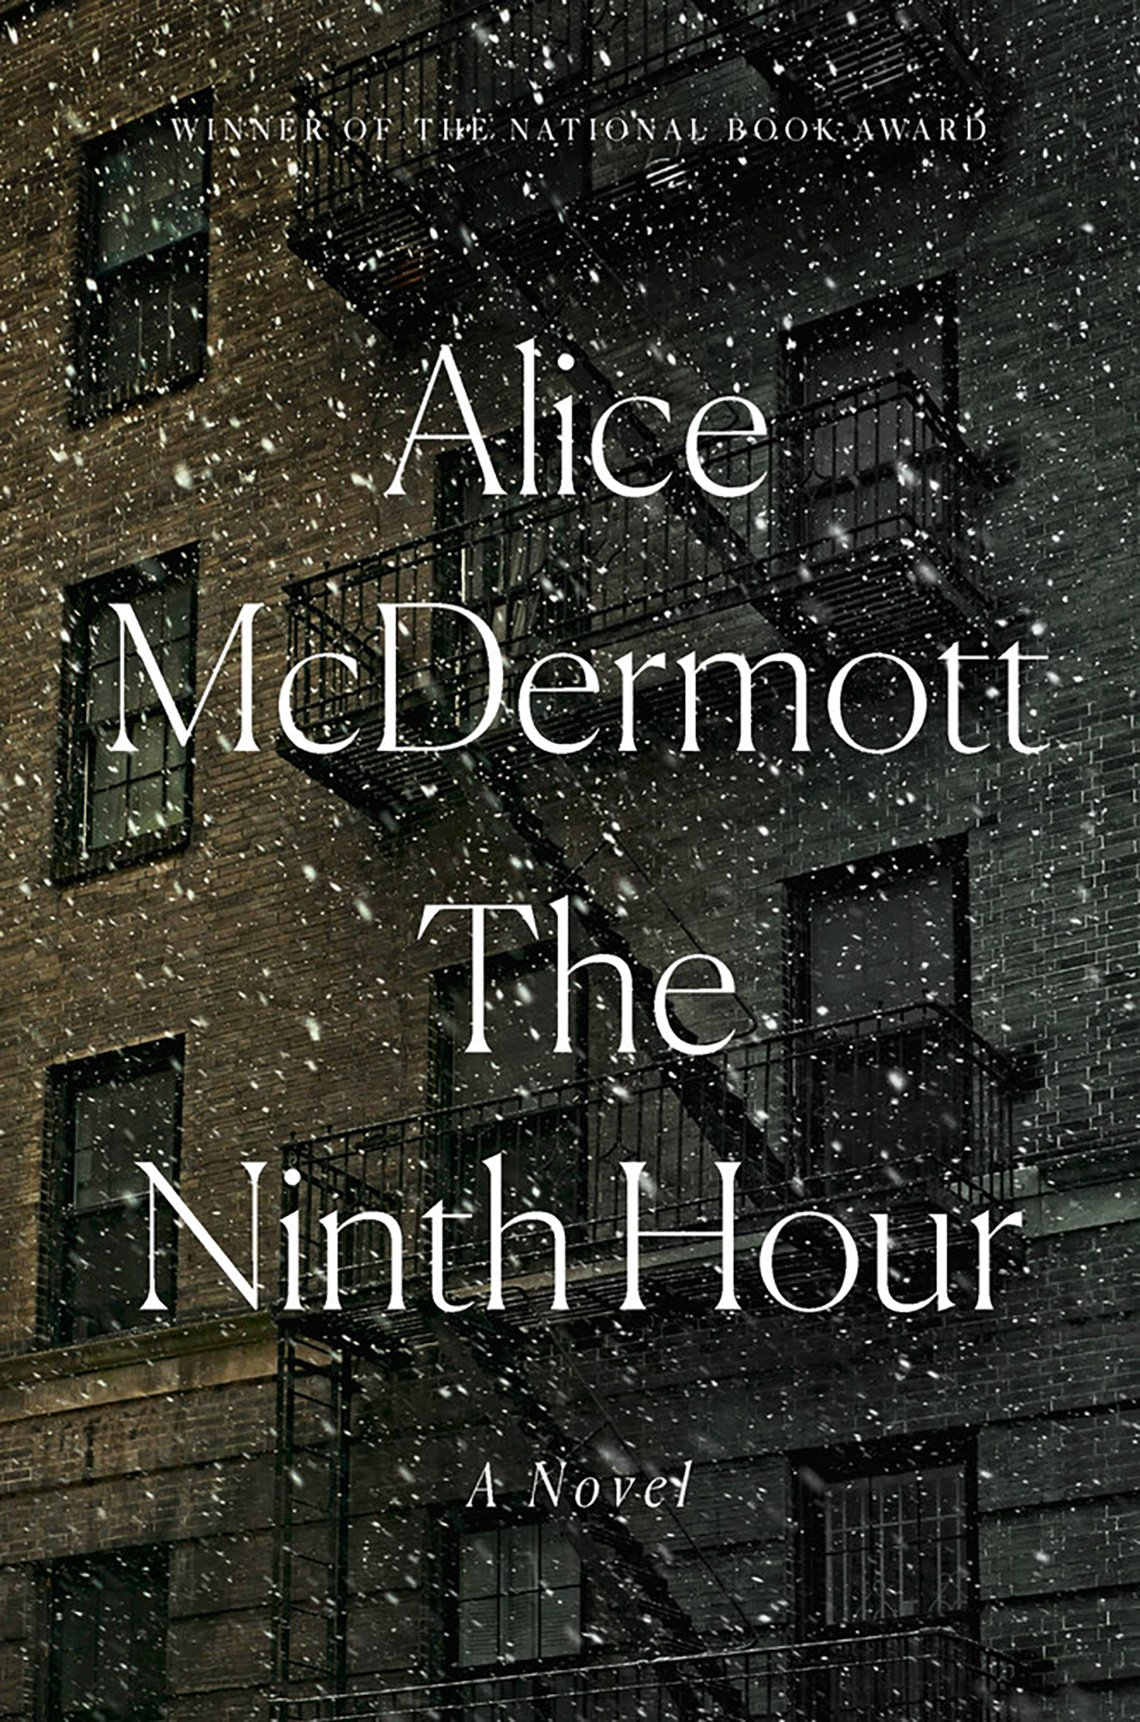 'The Ninth Hour' by Alice McDermott